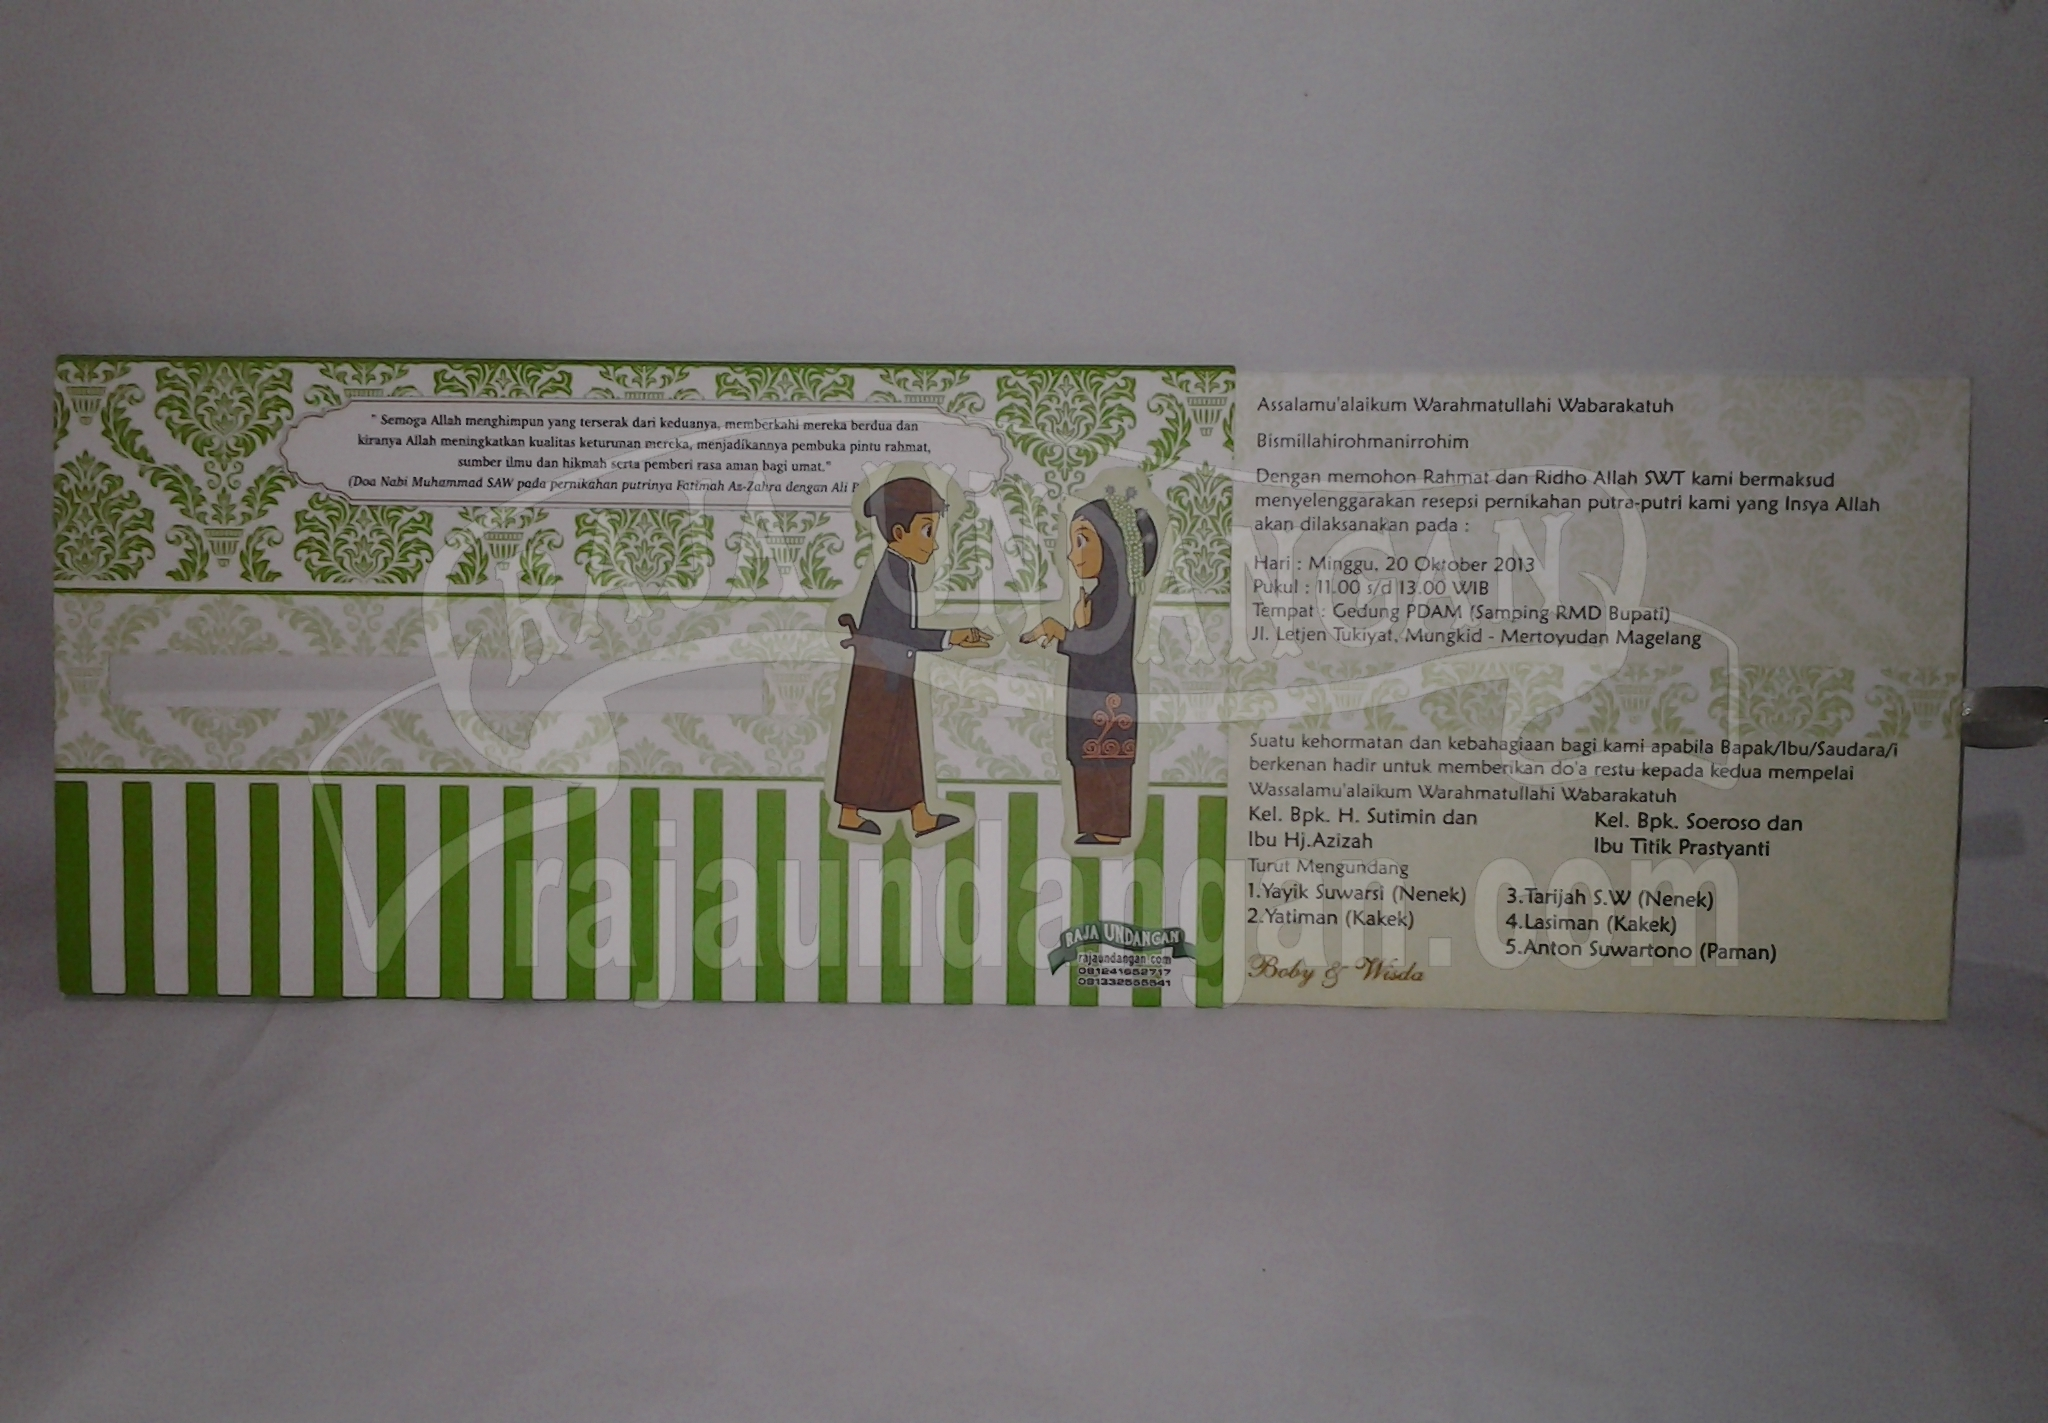 20131009 104040 - Cetak Wedding Invitations Online di Darmo